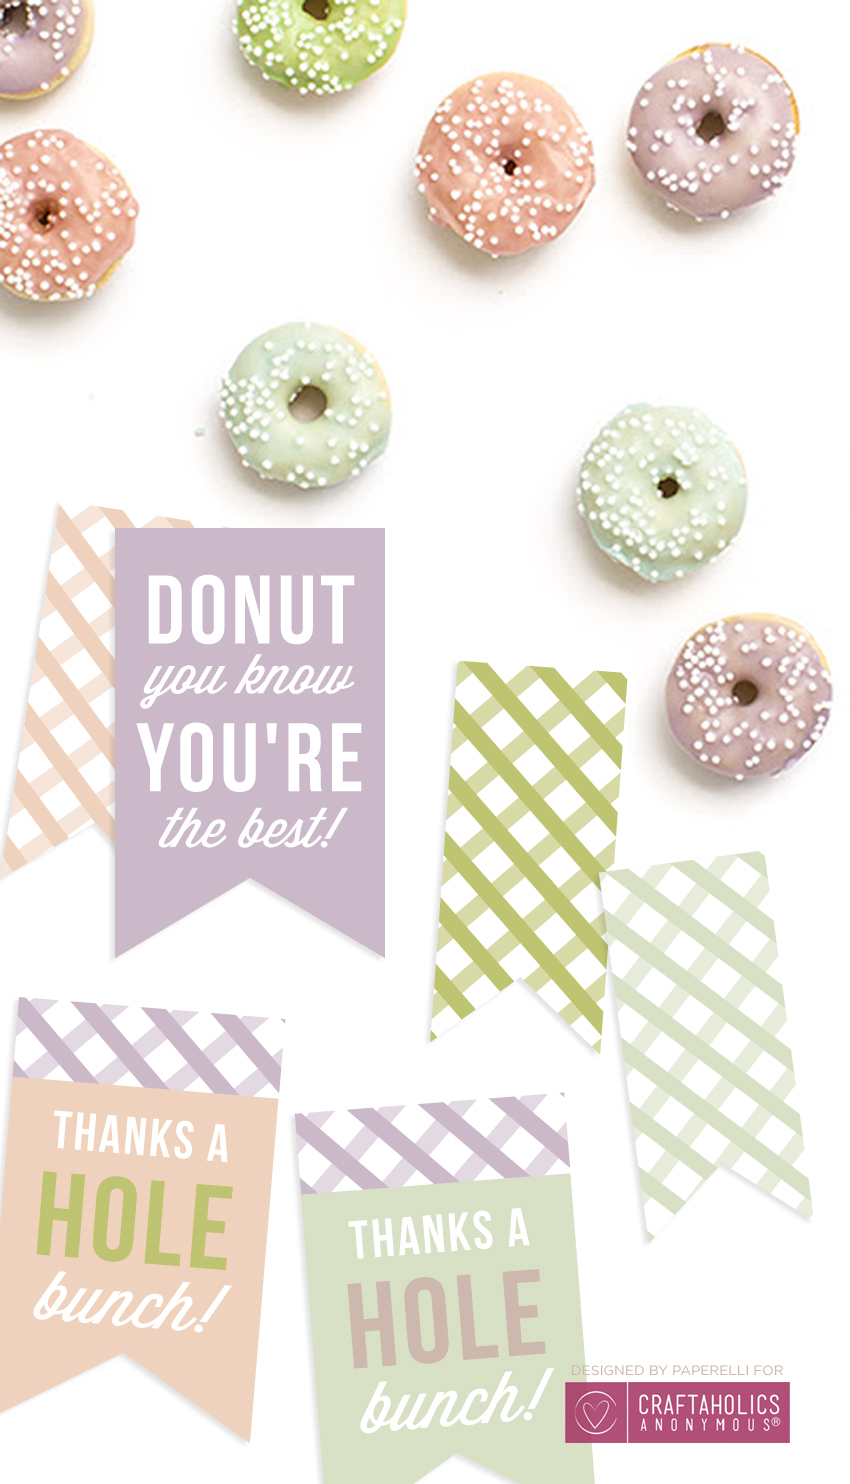 picture about Donut Printable called Craftaholics Anonymous® Free of charge Printable Donut Tags